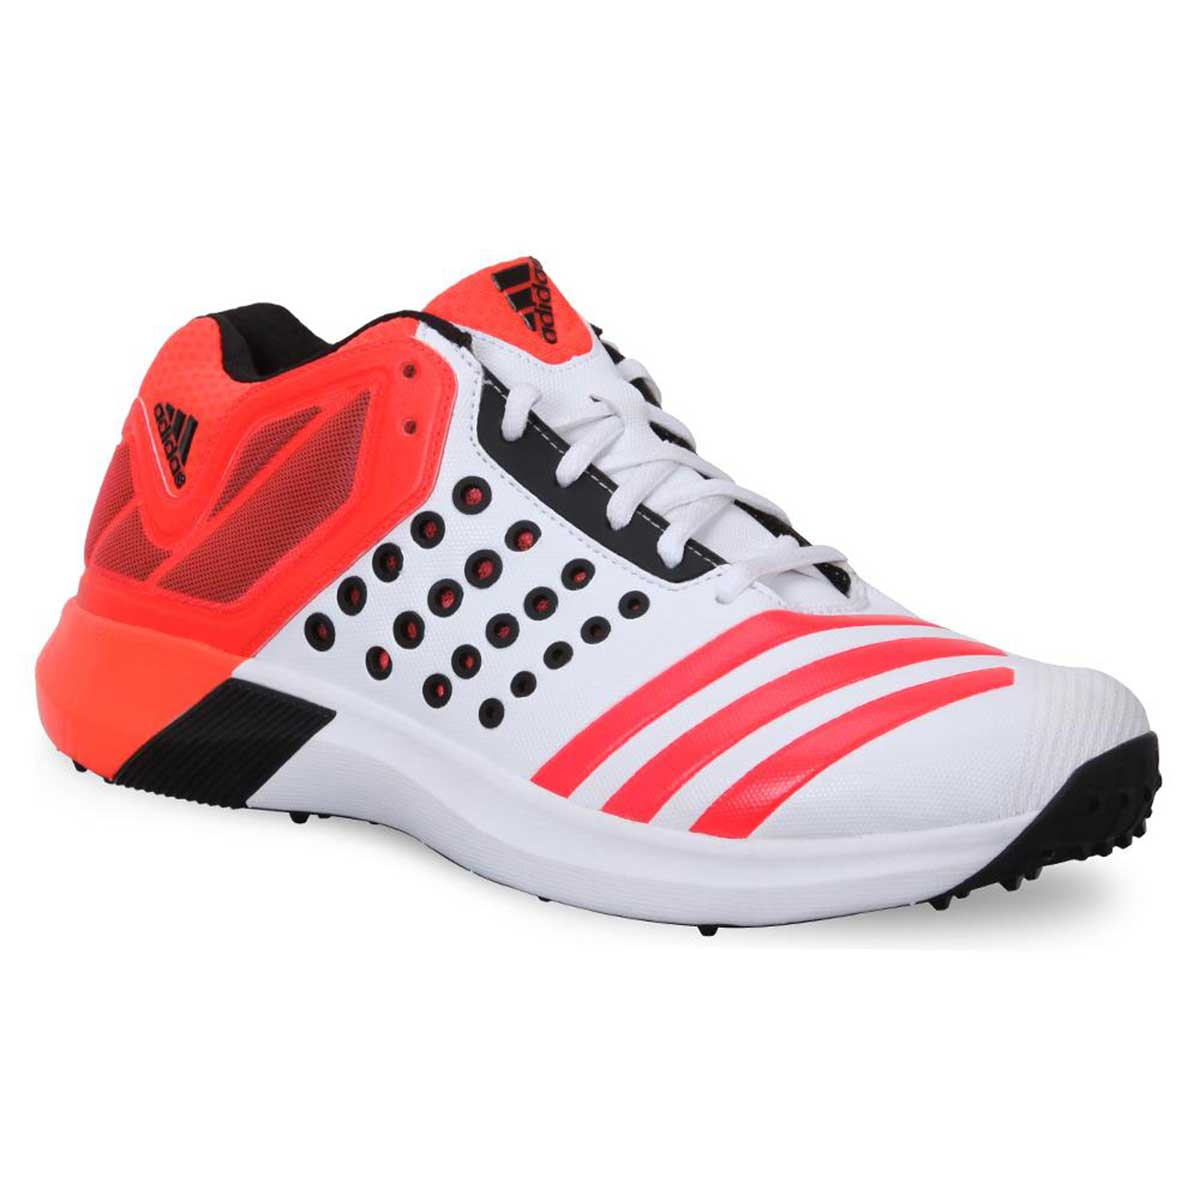 Cricket Shoes, Cricket, Sports, Buy, Adidas, Adidas AdiPower Vector Mid-Cut Cricket  Shoes (Red)